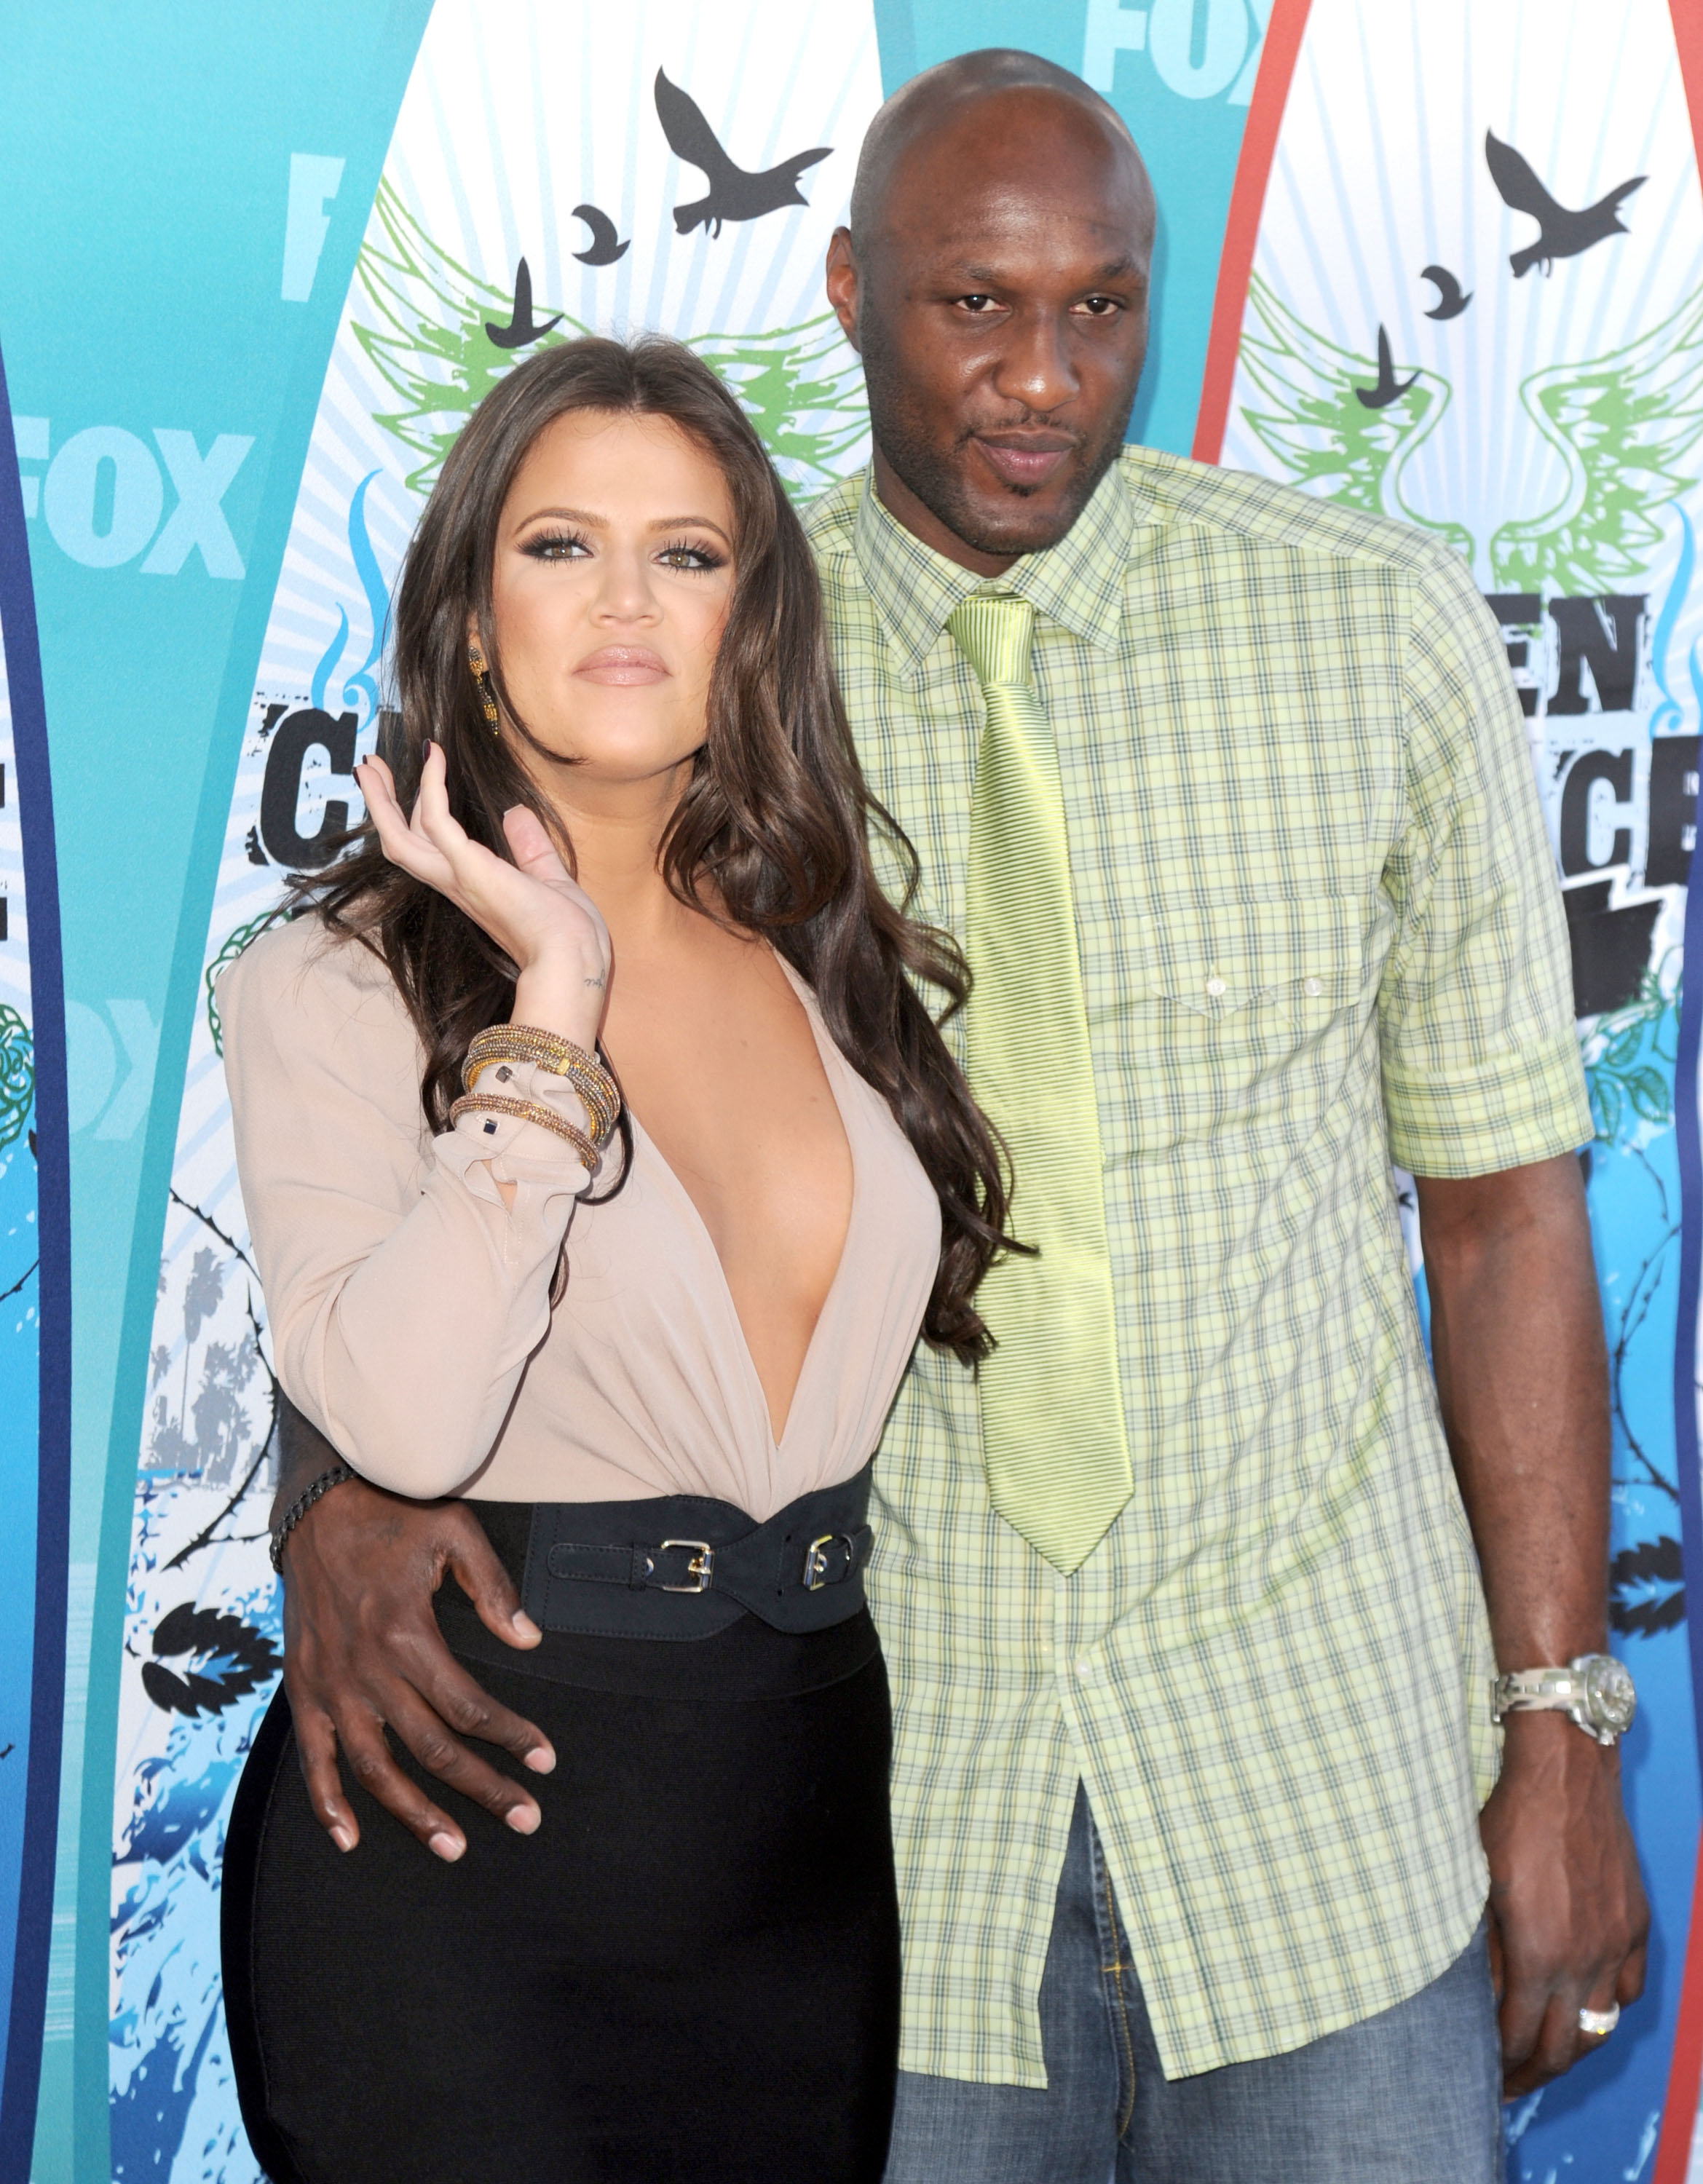 Khloe Reveals Why Shes Still Married To Lamar (The REAL